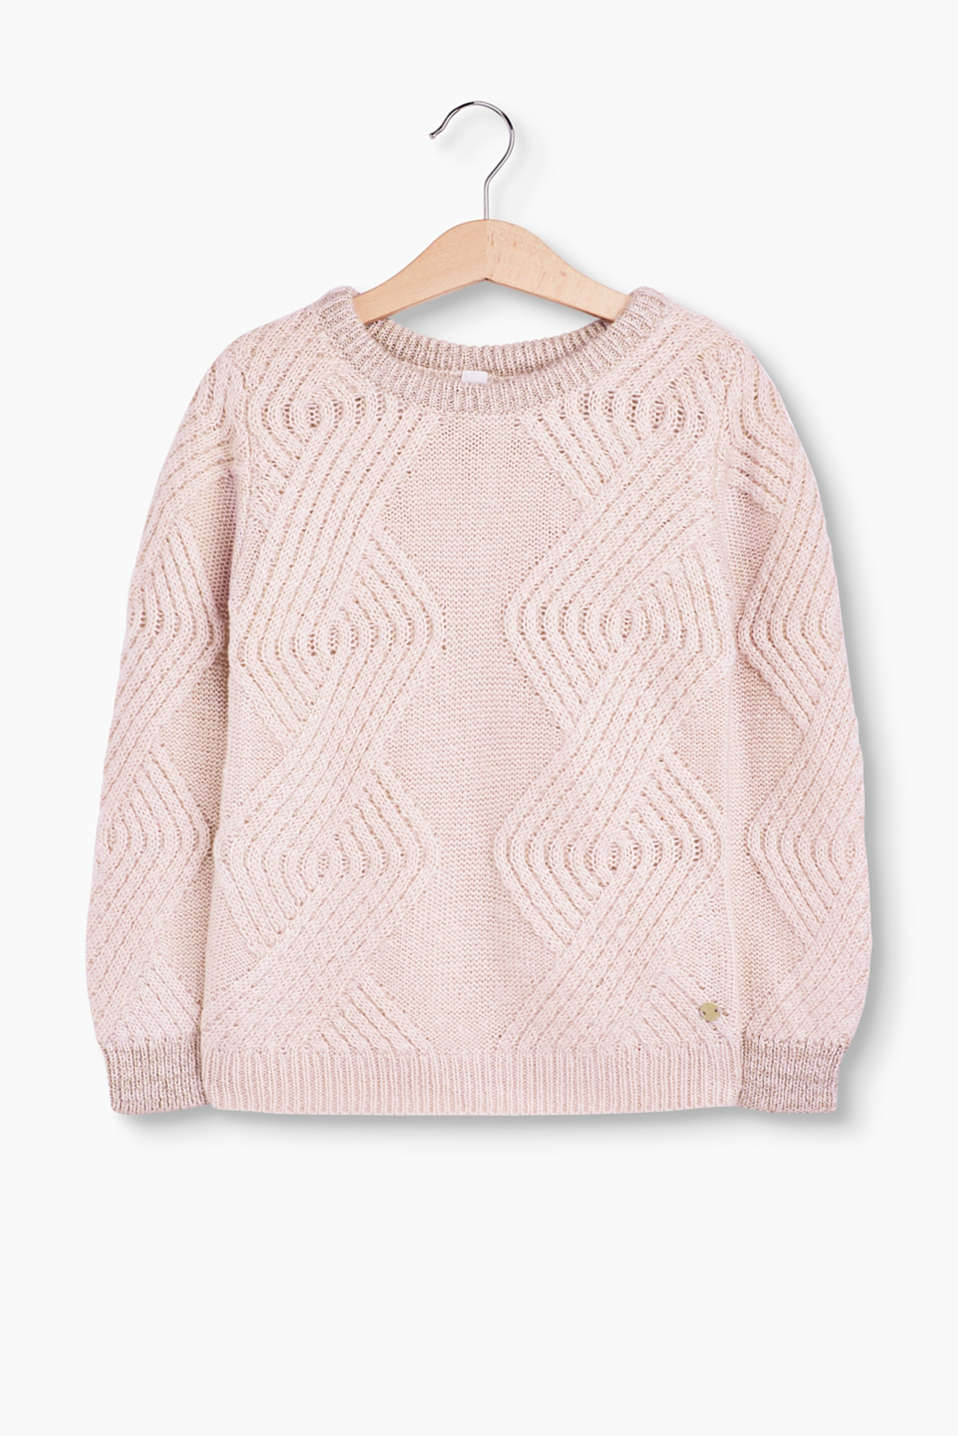 This jumper is super-pretty and warm at the same time with its cable pattern and tonal lurex shimmer on the edges.